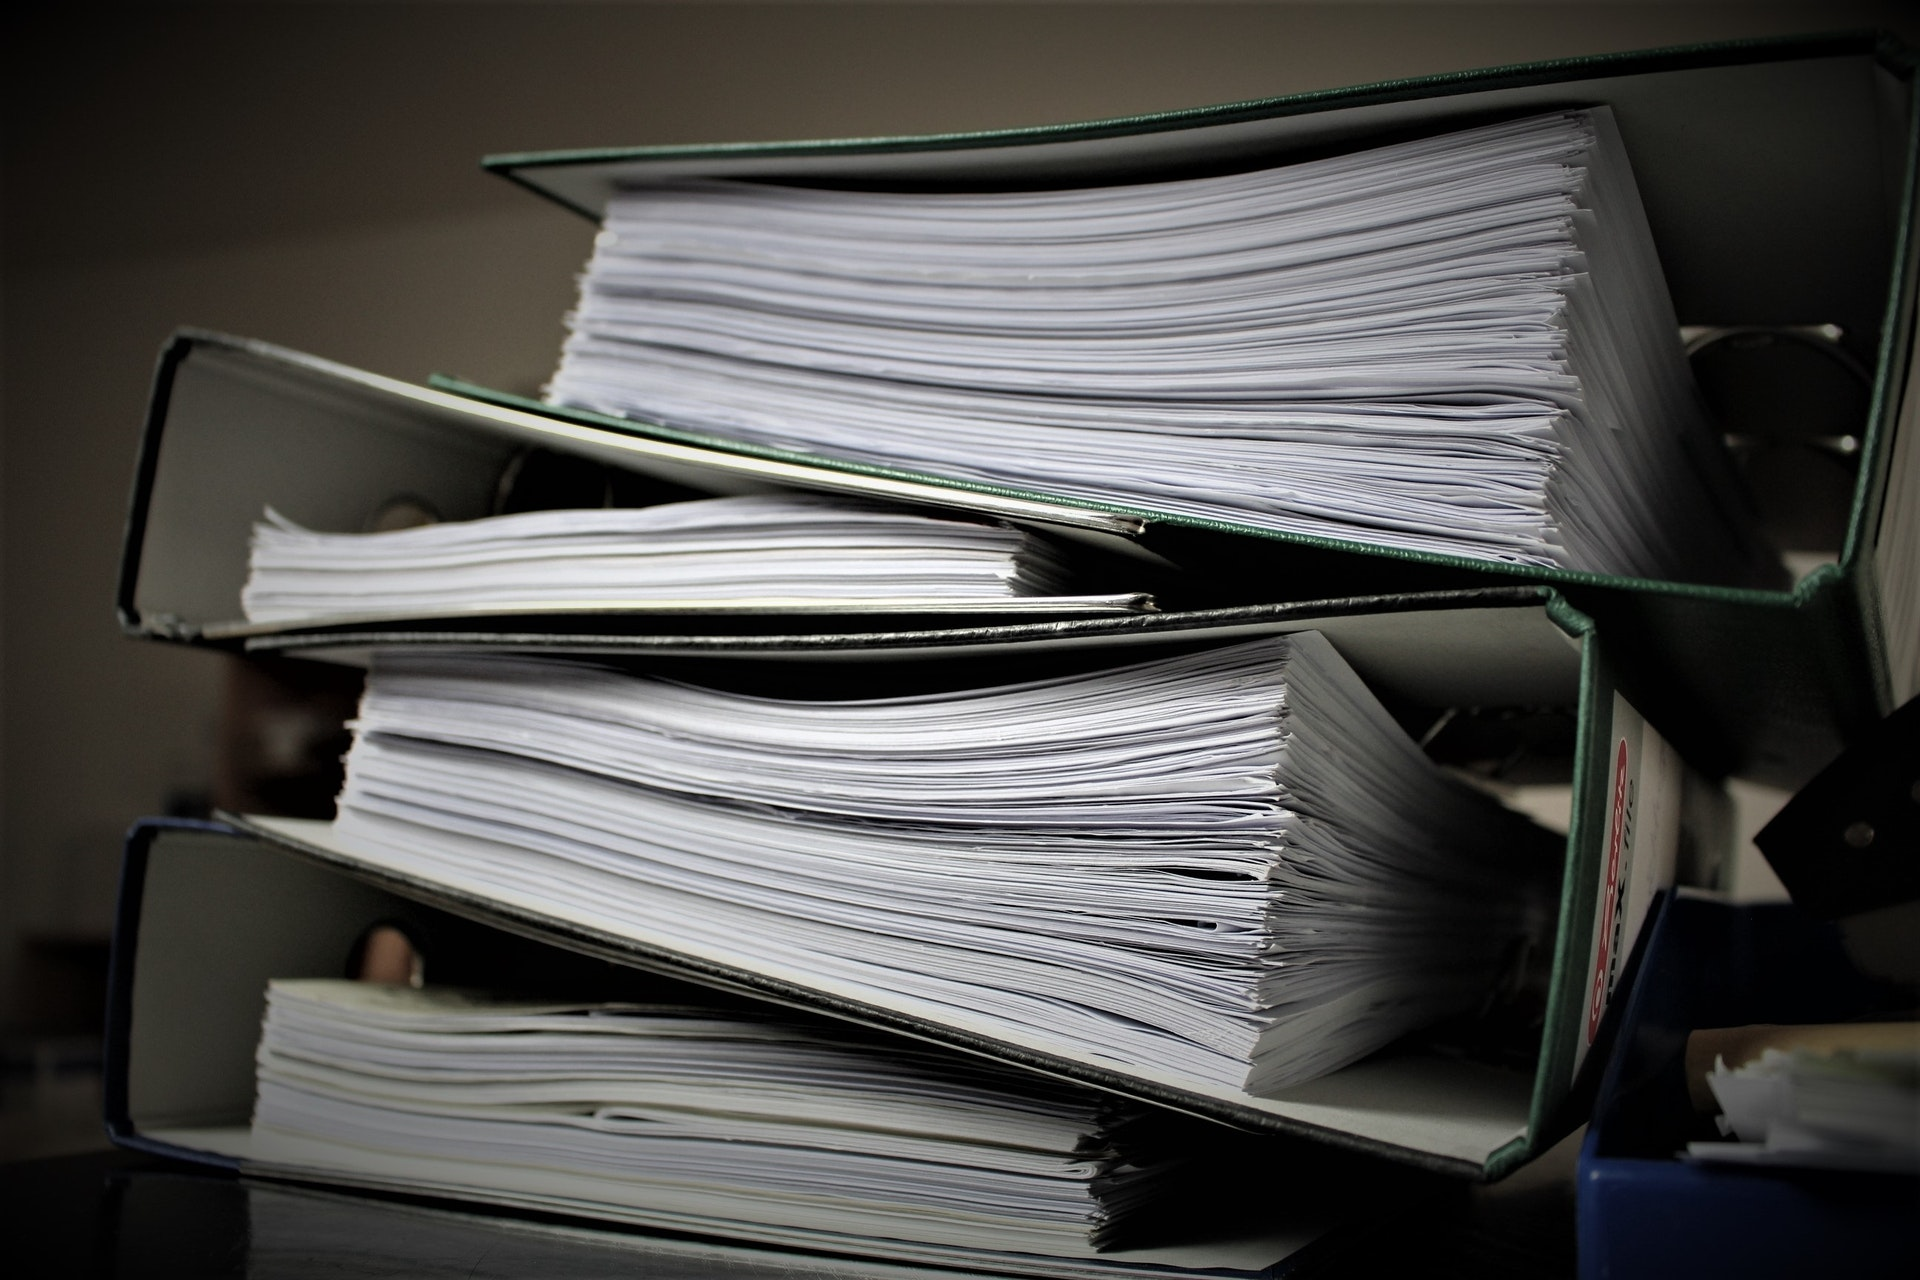 Documents cover image